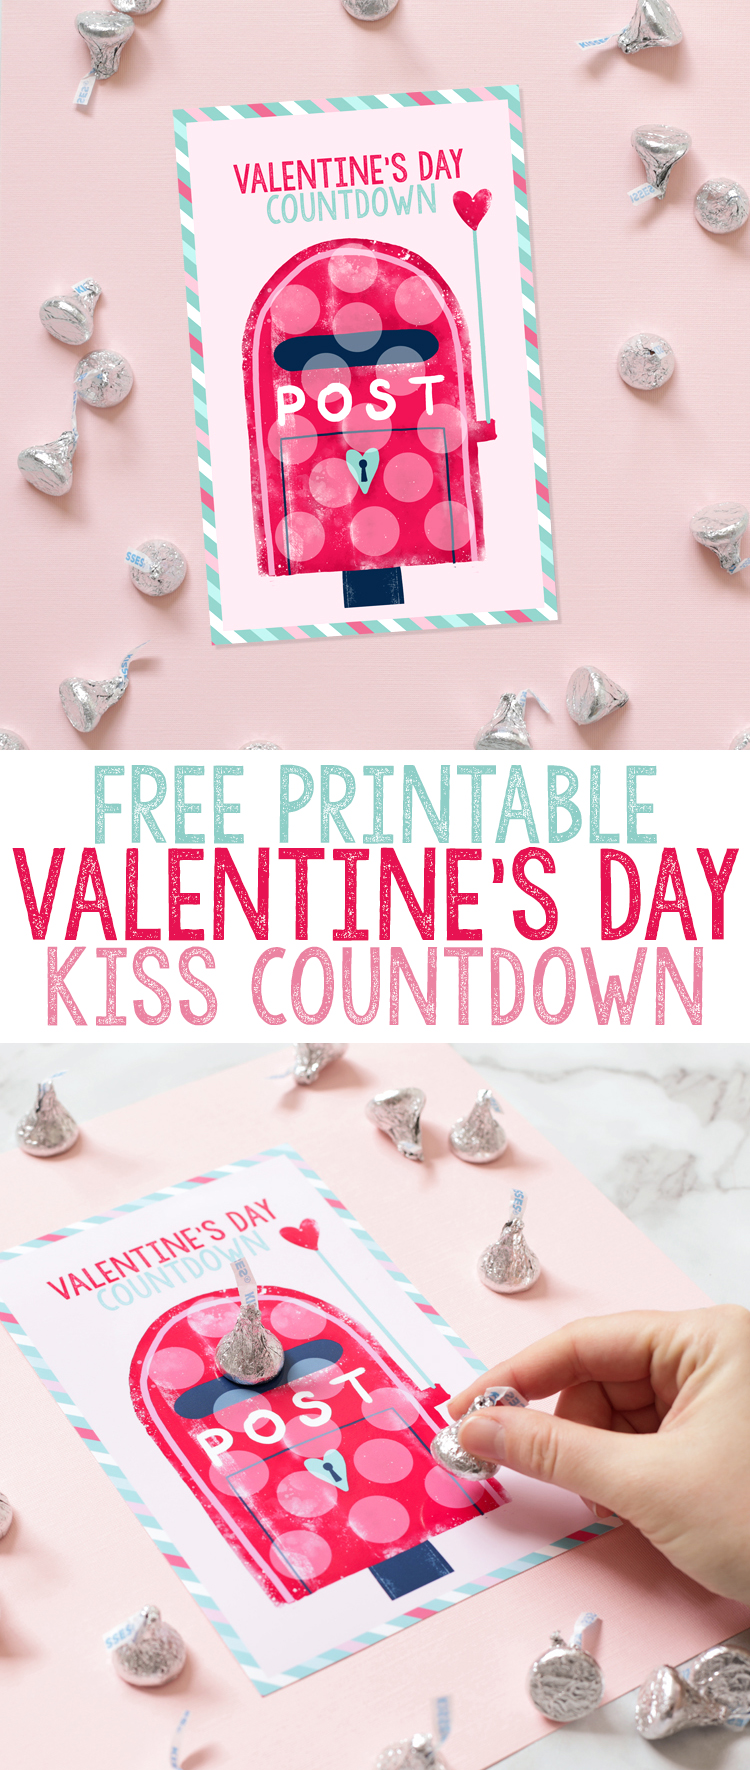 image about Printable Valentines Craft identified as Free of charge Printable Valentines Working day Countdown -